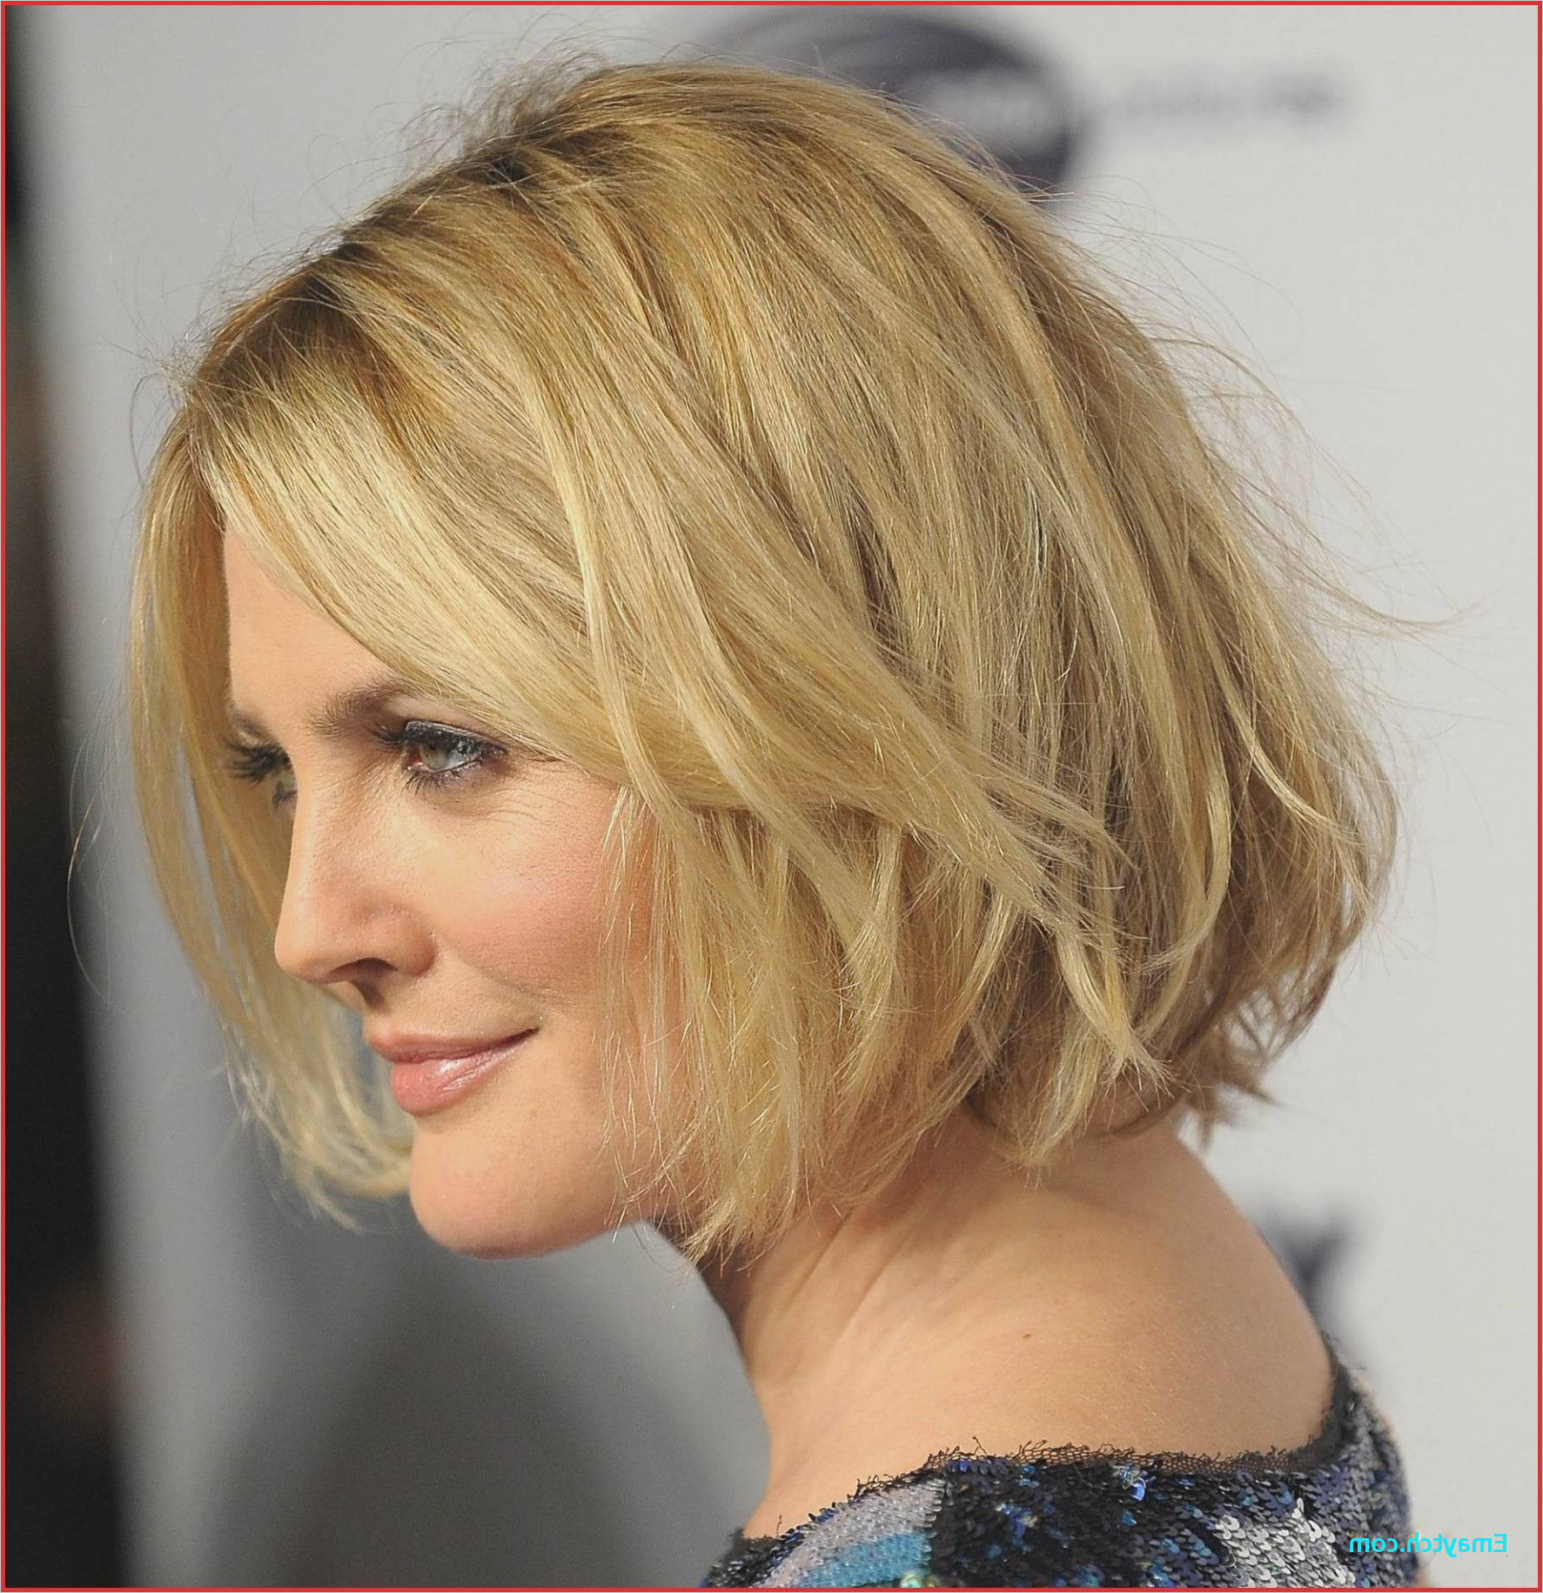 Hairstyles For Gray Hair (View 11 of 20)